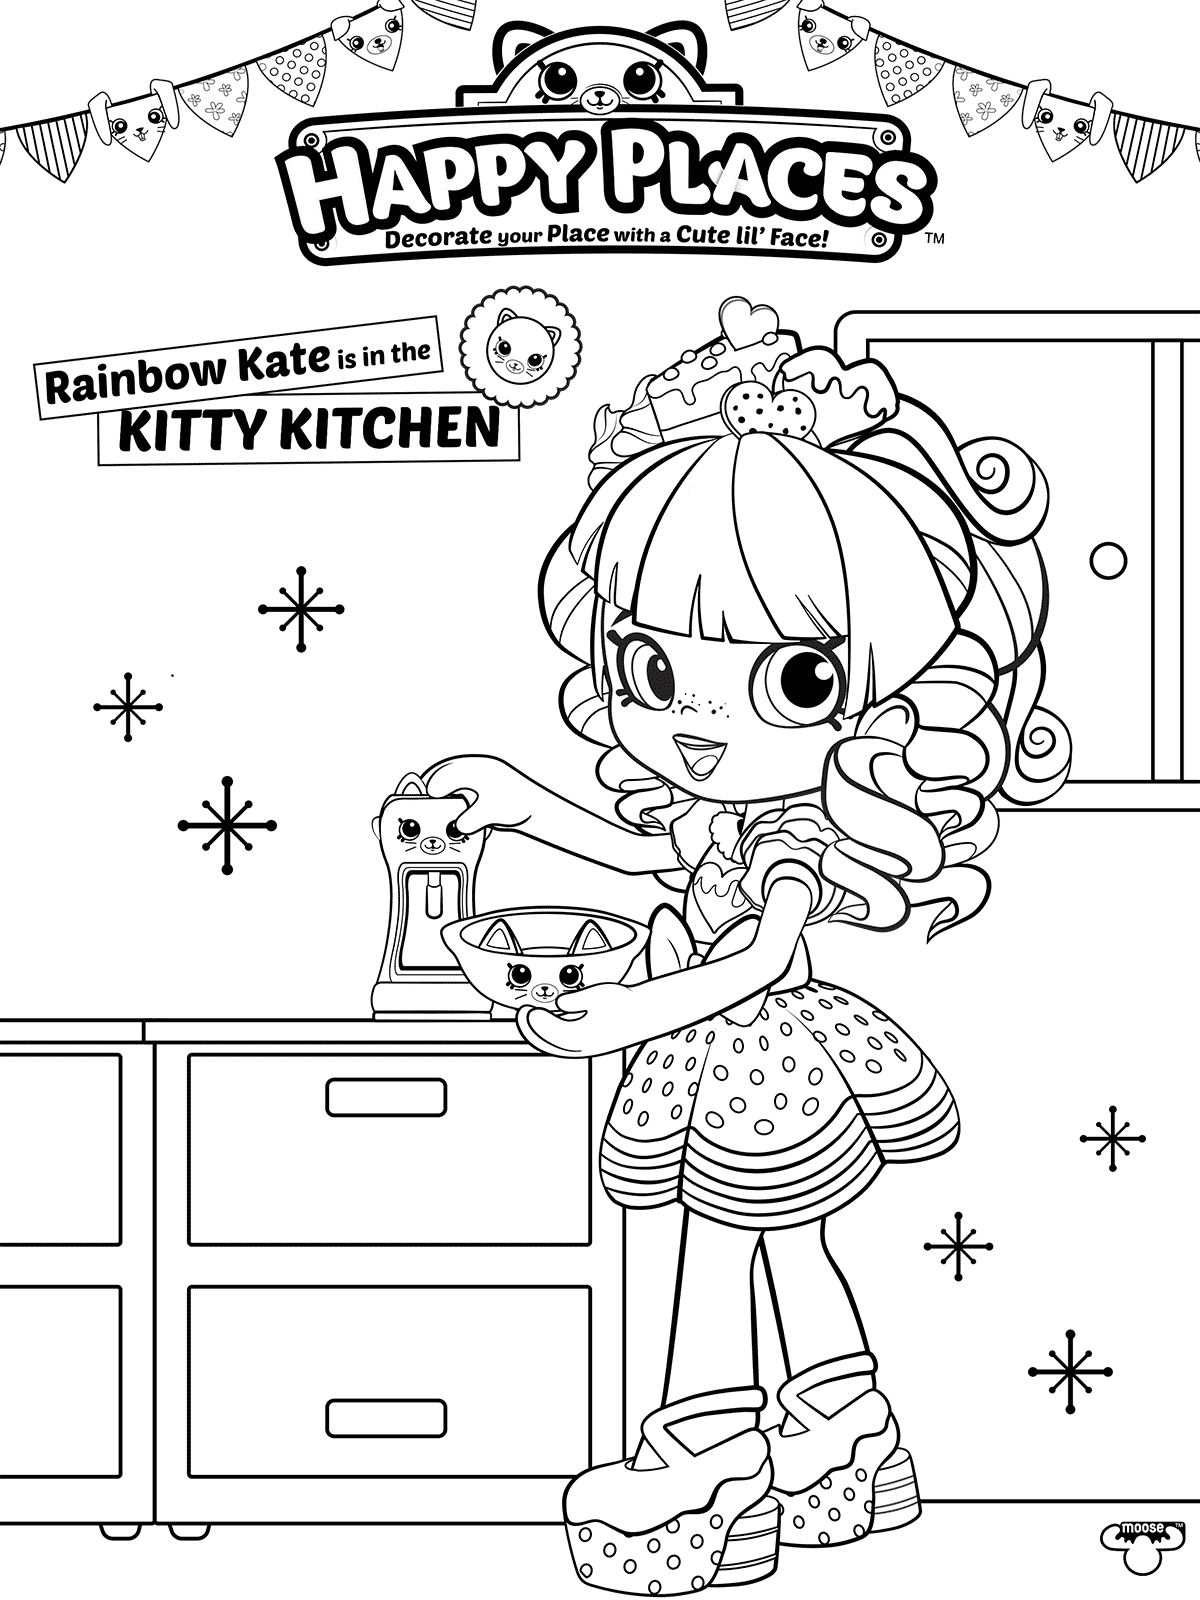 Kidsnfun 53 coloring pages of Shopkins